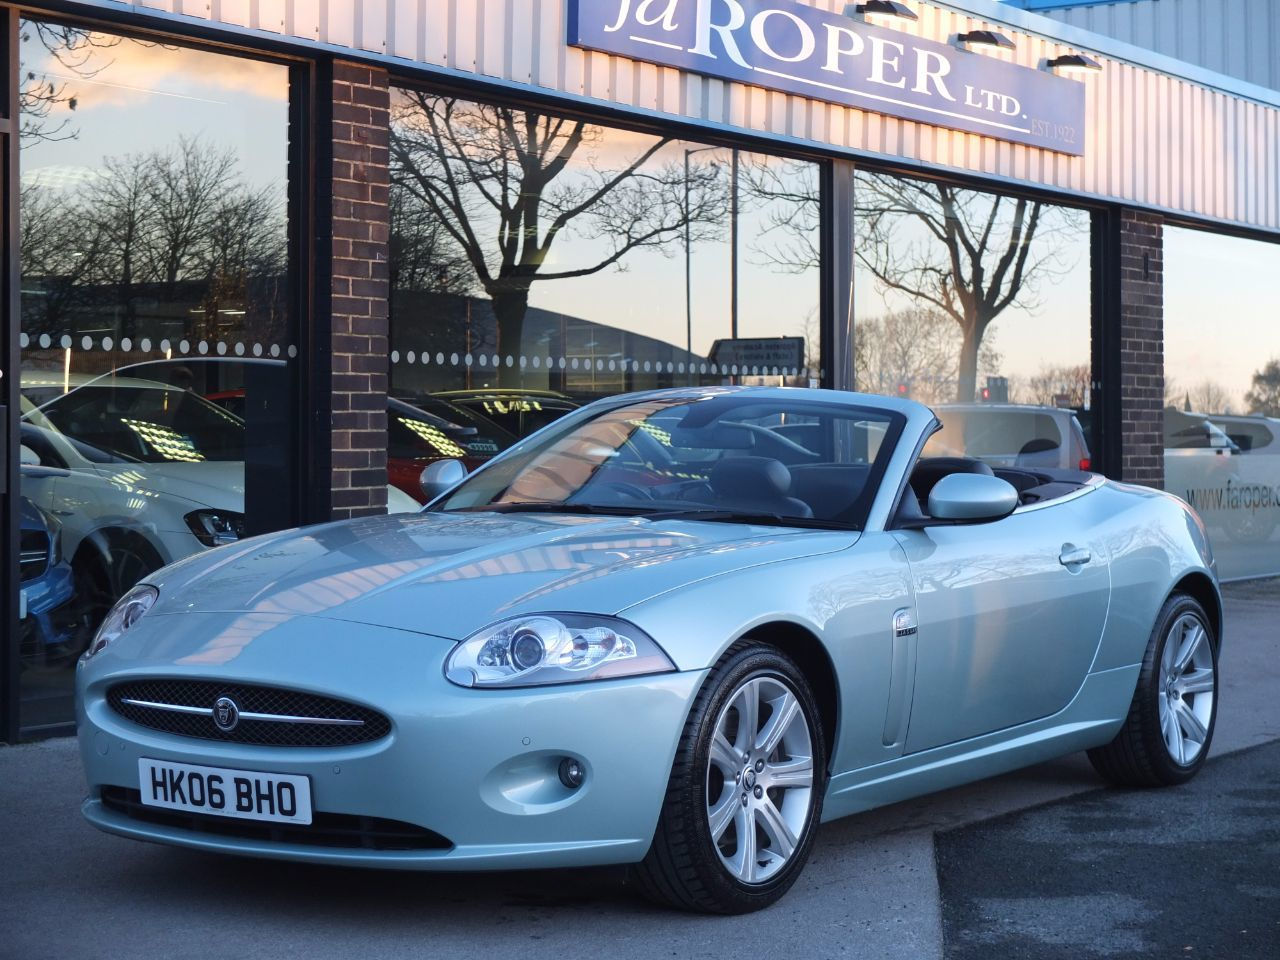 Jaguar XK 4.2 V8 Convertible Auto Sports Petrol Silver Seafrost Metallic, Black HoodJaguar XK 4.2 V8 Convertible Auto Sports Petrol Silver Seafrost Metallic, Black Hood at fa Roper Ltd Bradford